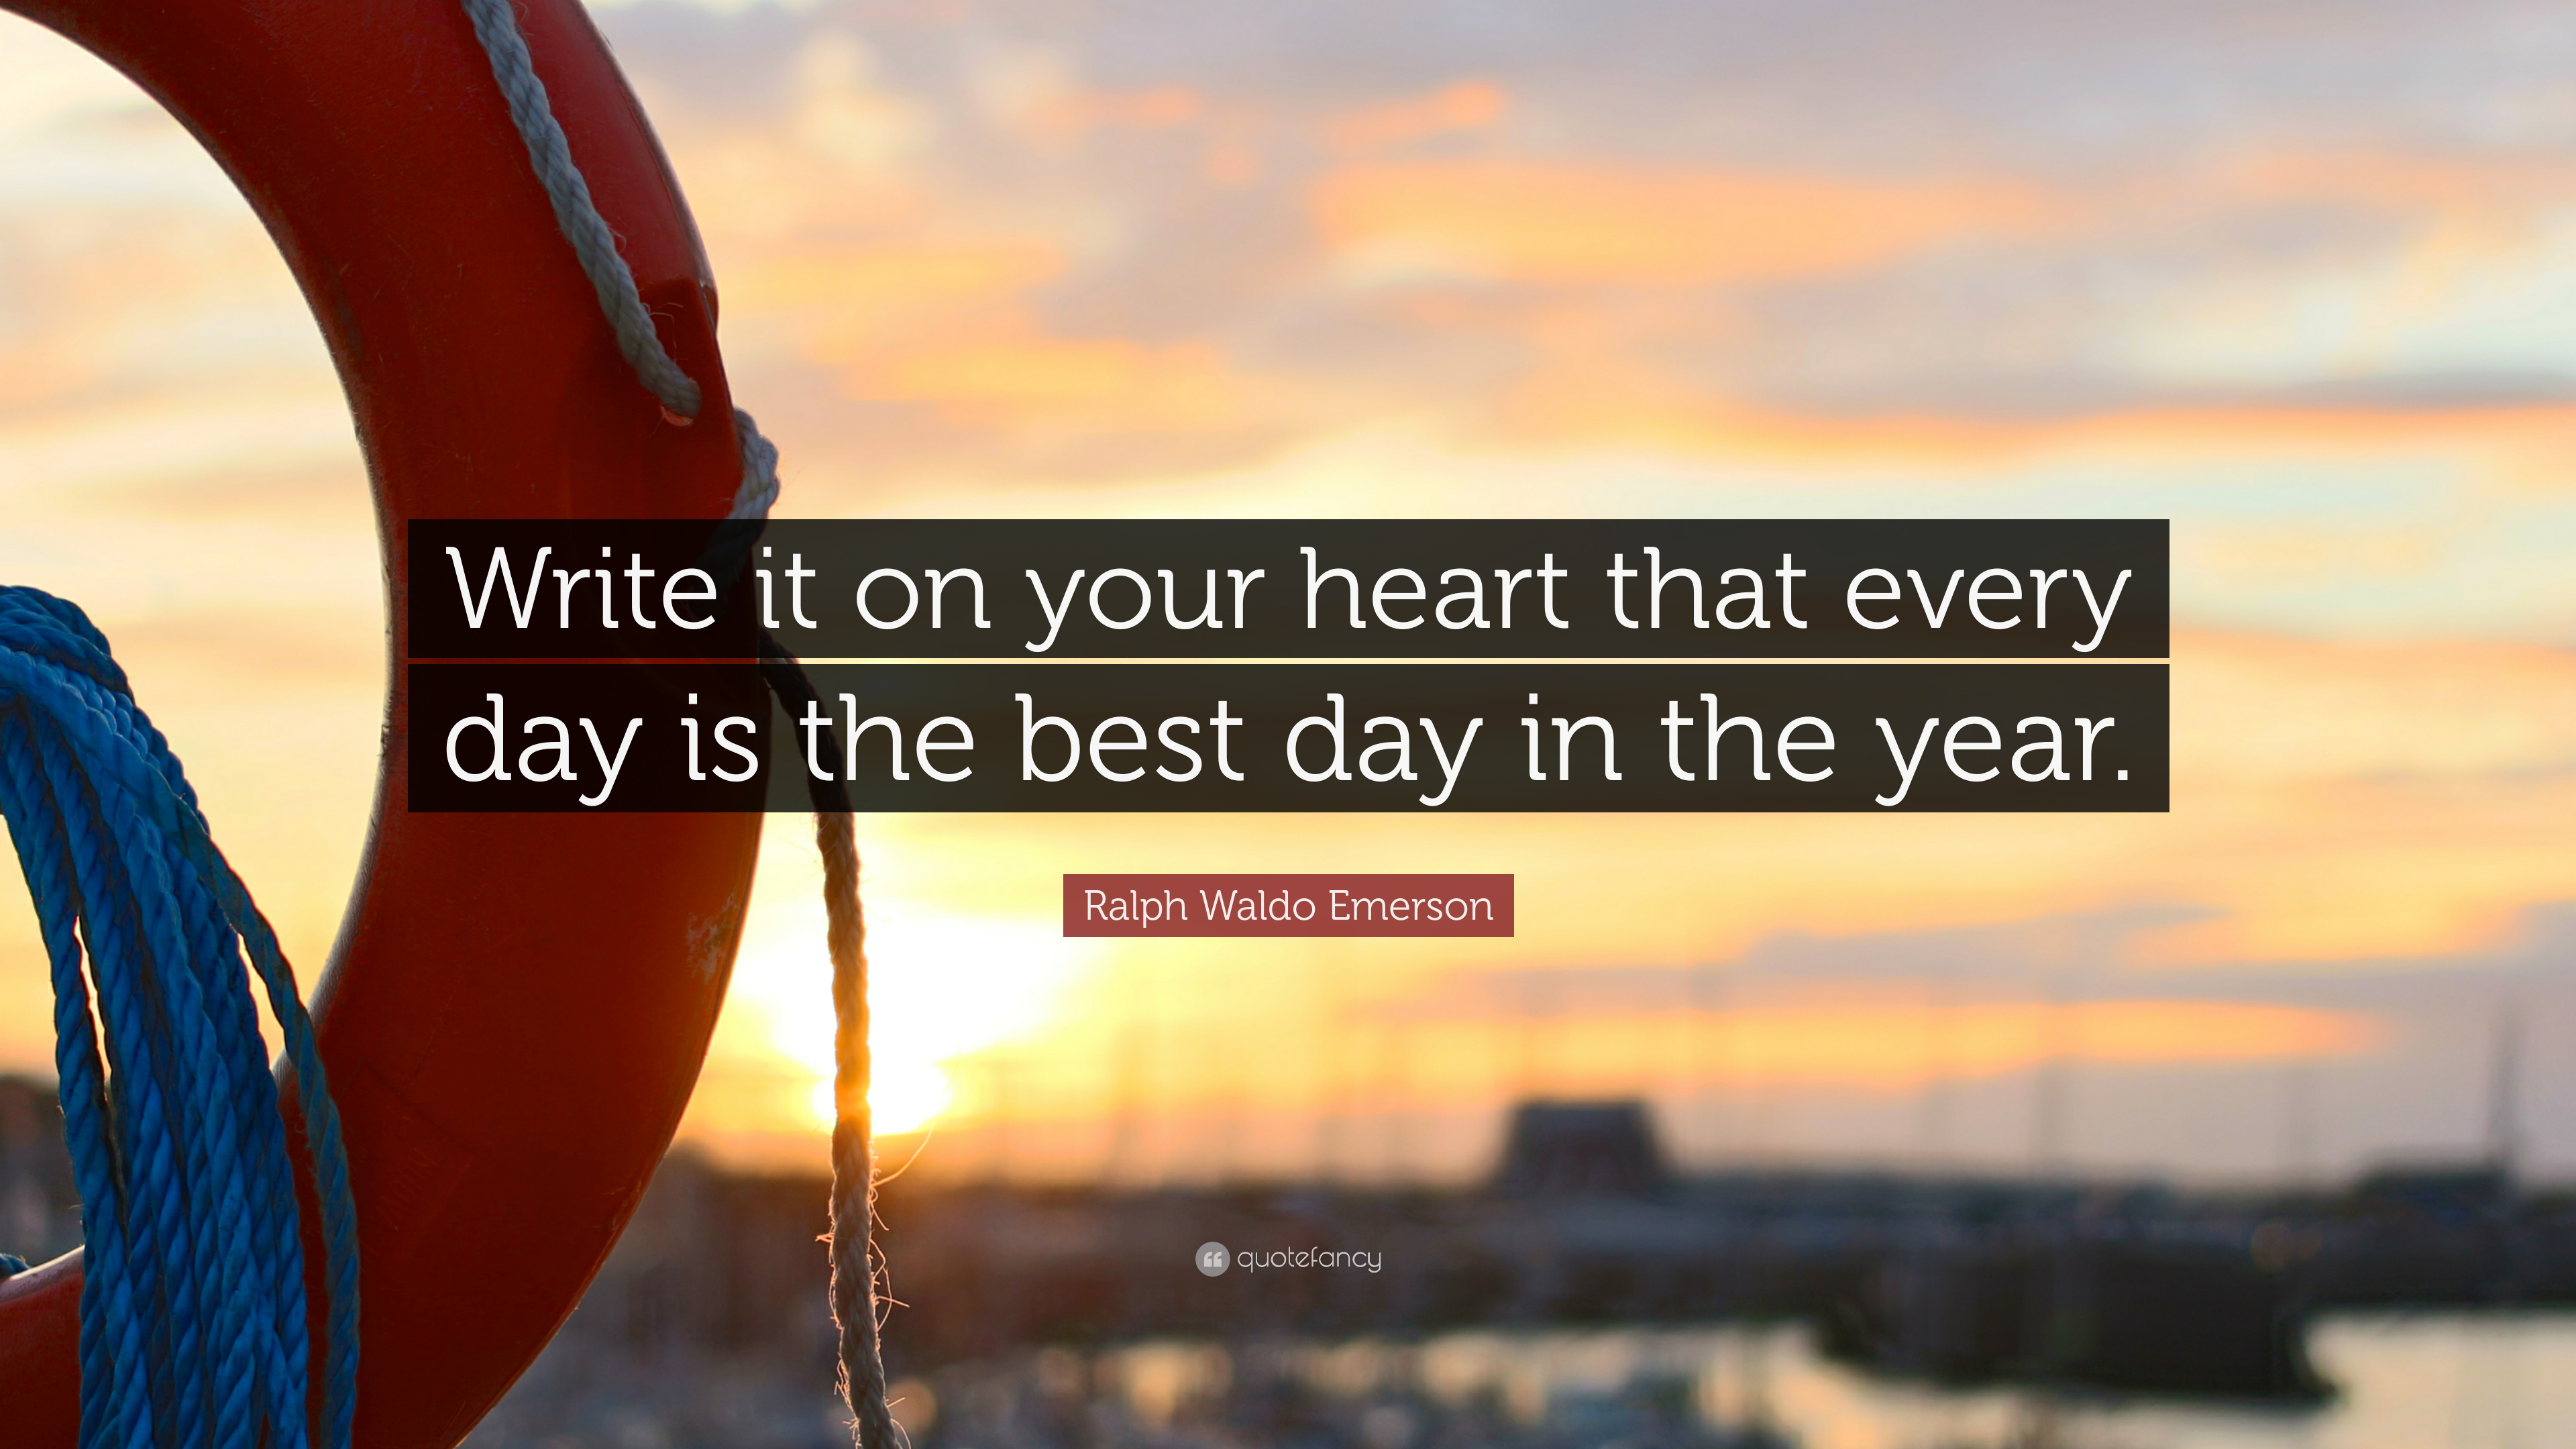 Persistence Quotes Wallpapers Ralph Waldo Emerson Quote Write It On Your Heart That